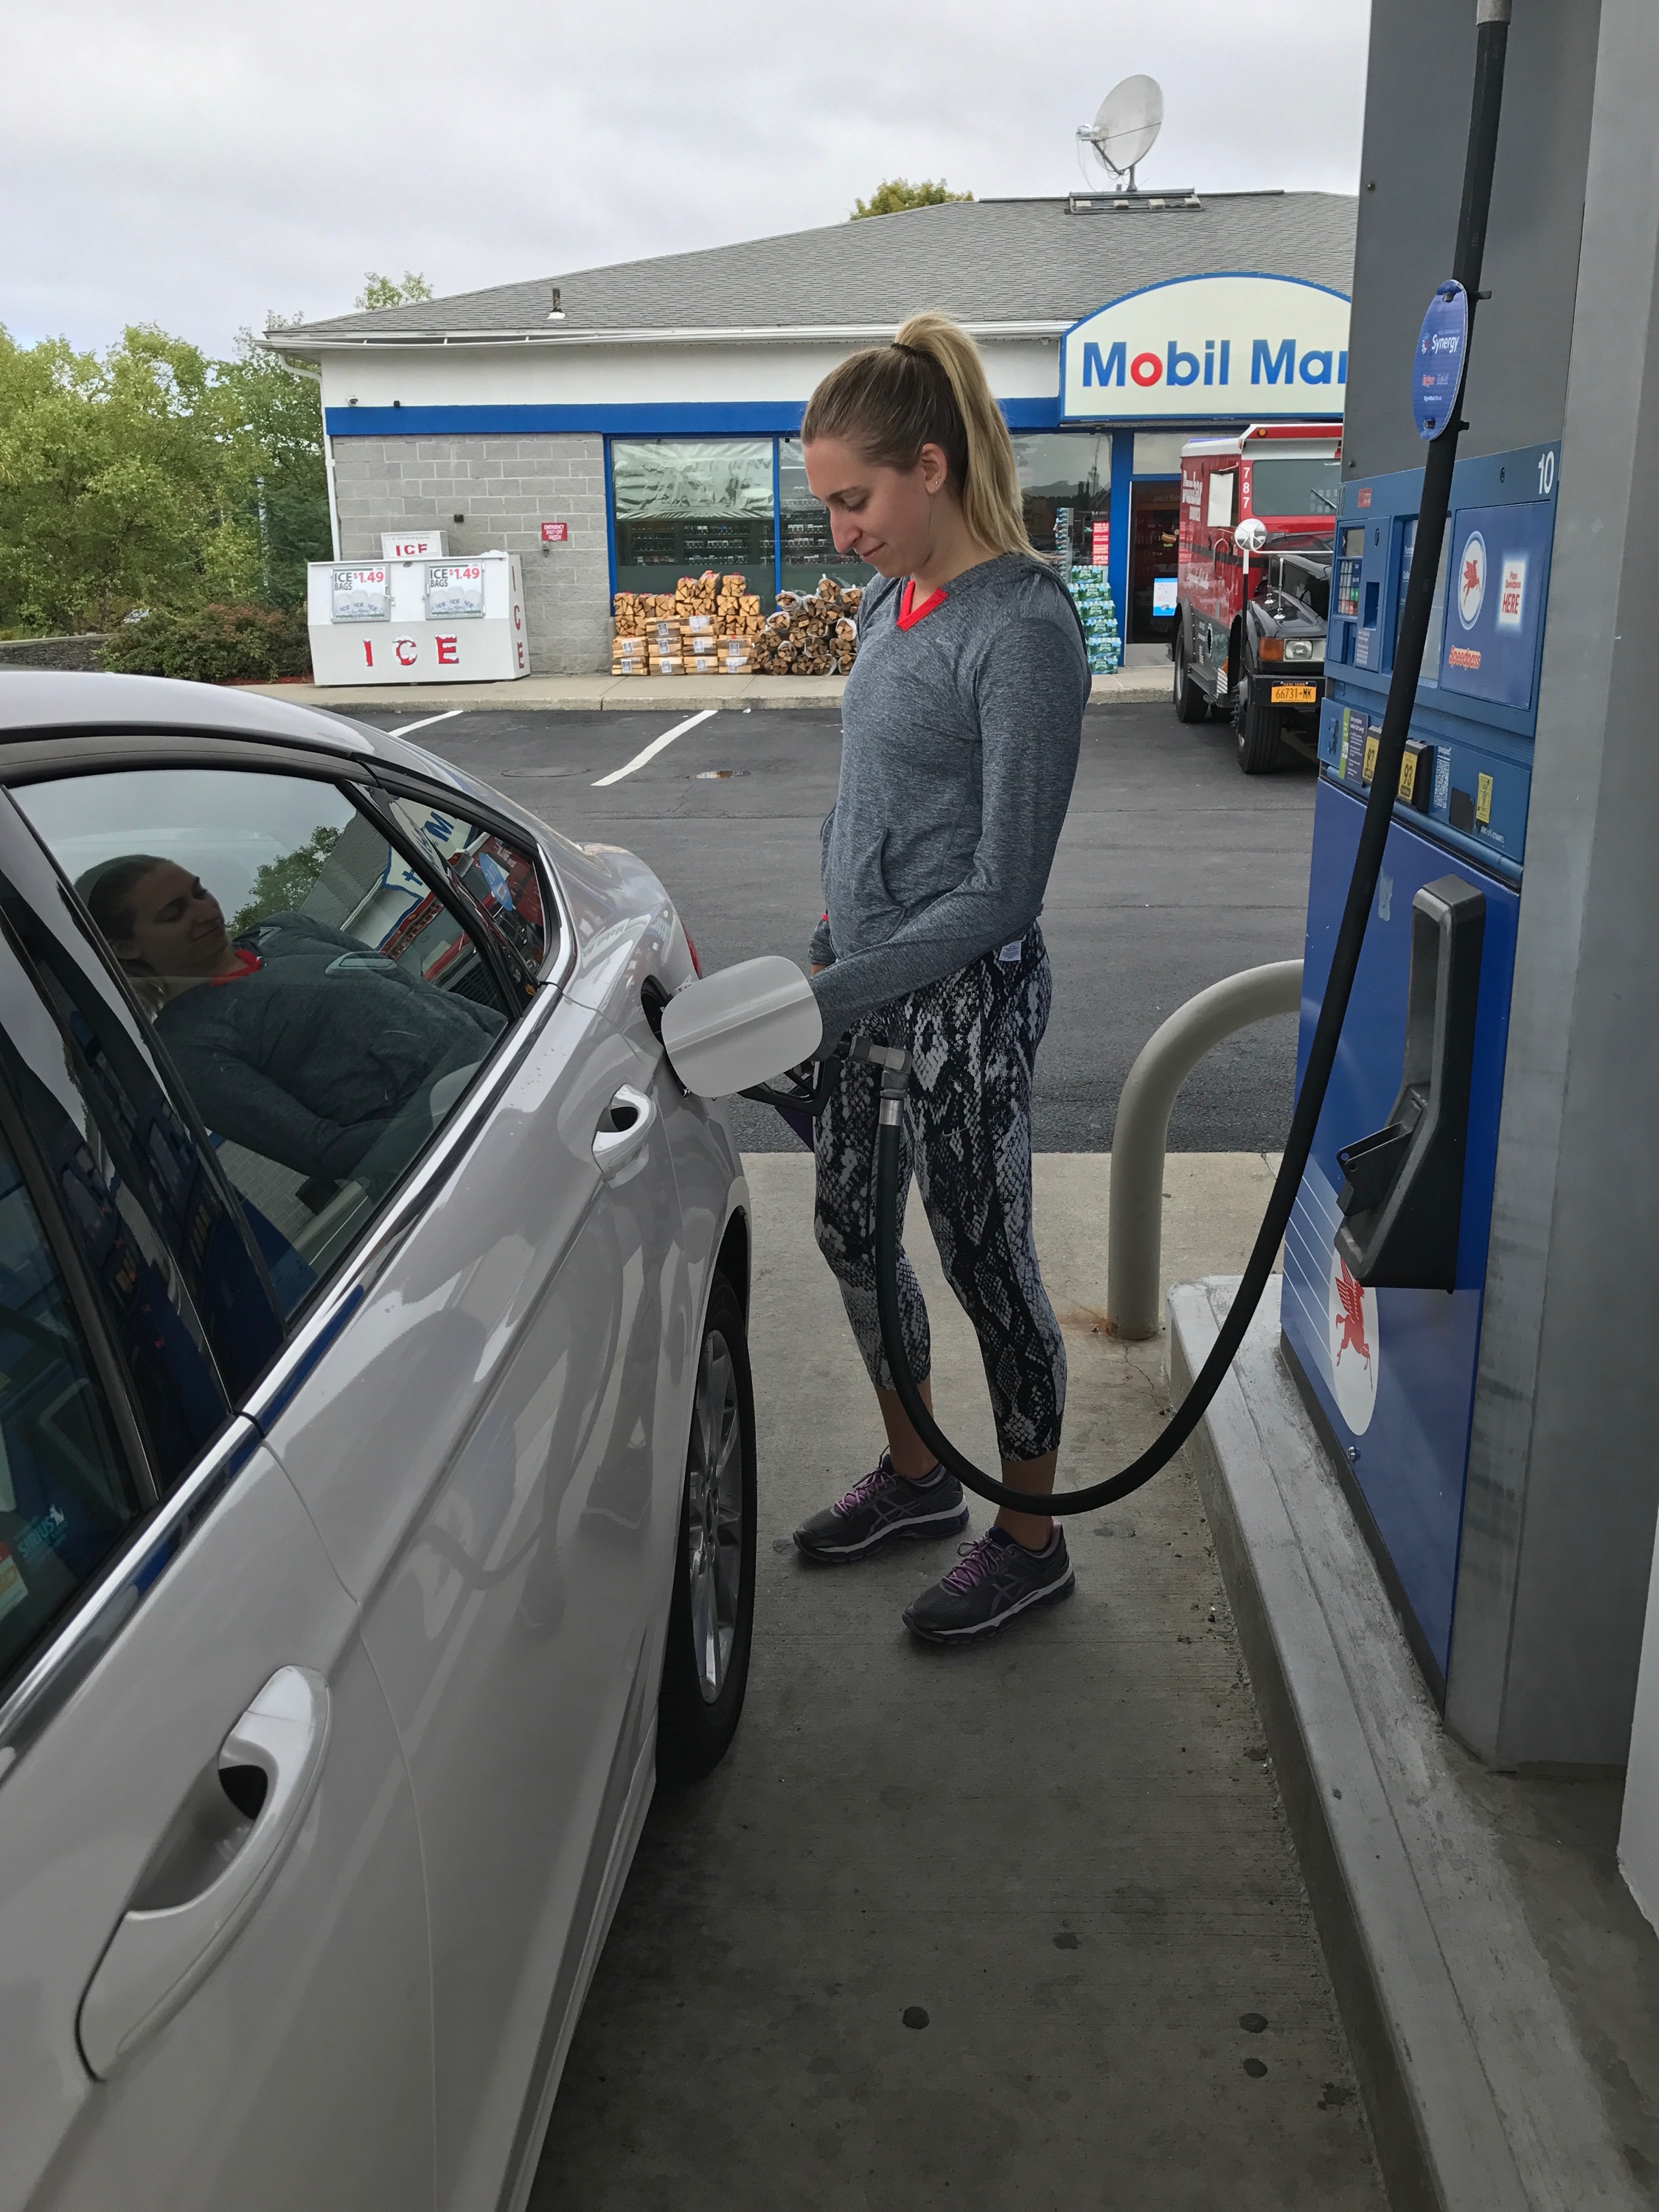 Gas Prices In California >> Impact Rising Gas Prices Have on College Students | The Red Fox Report